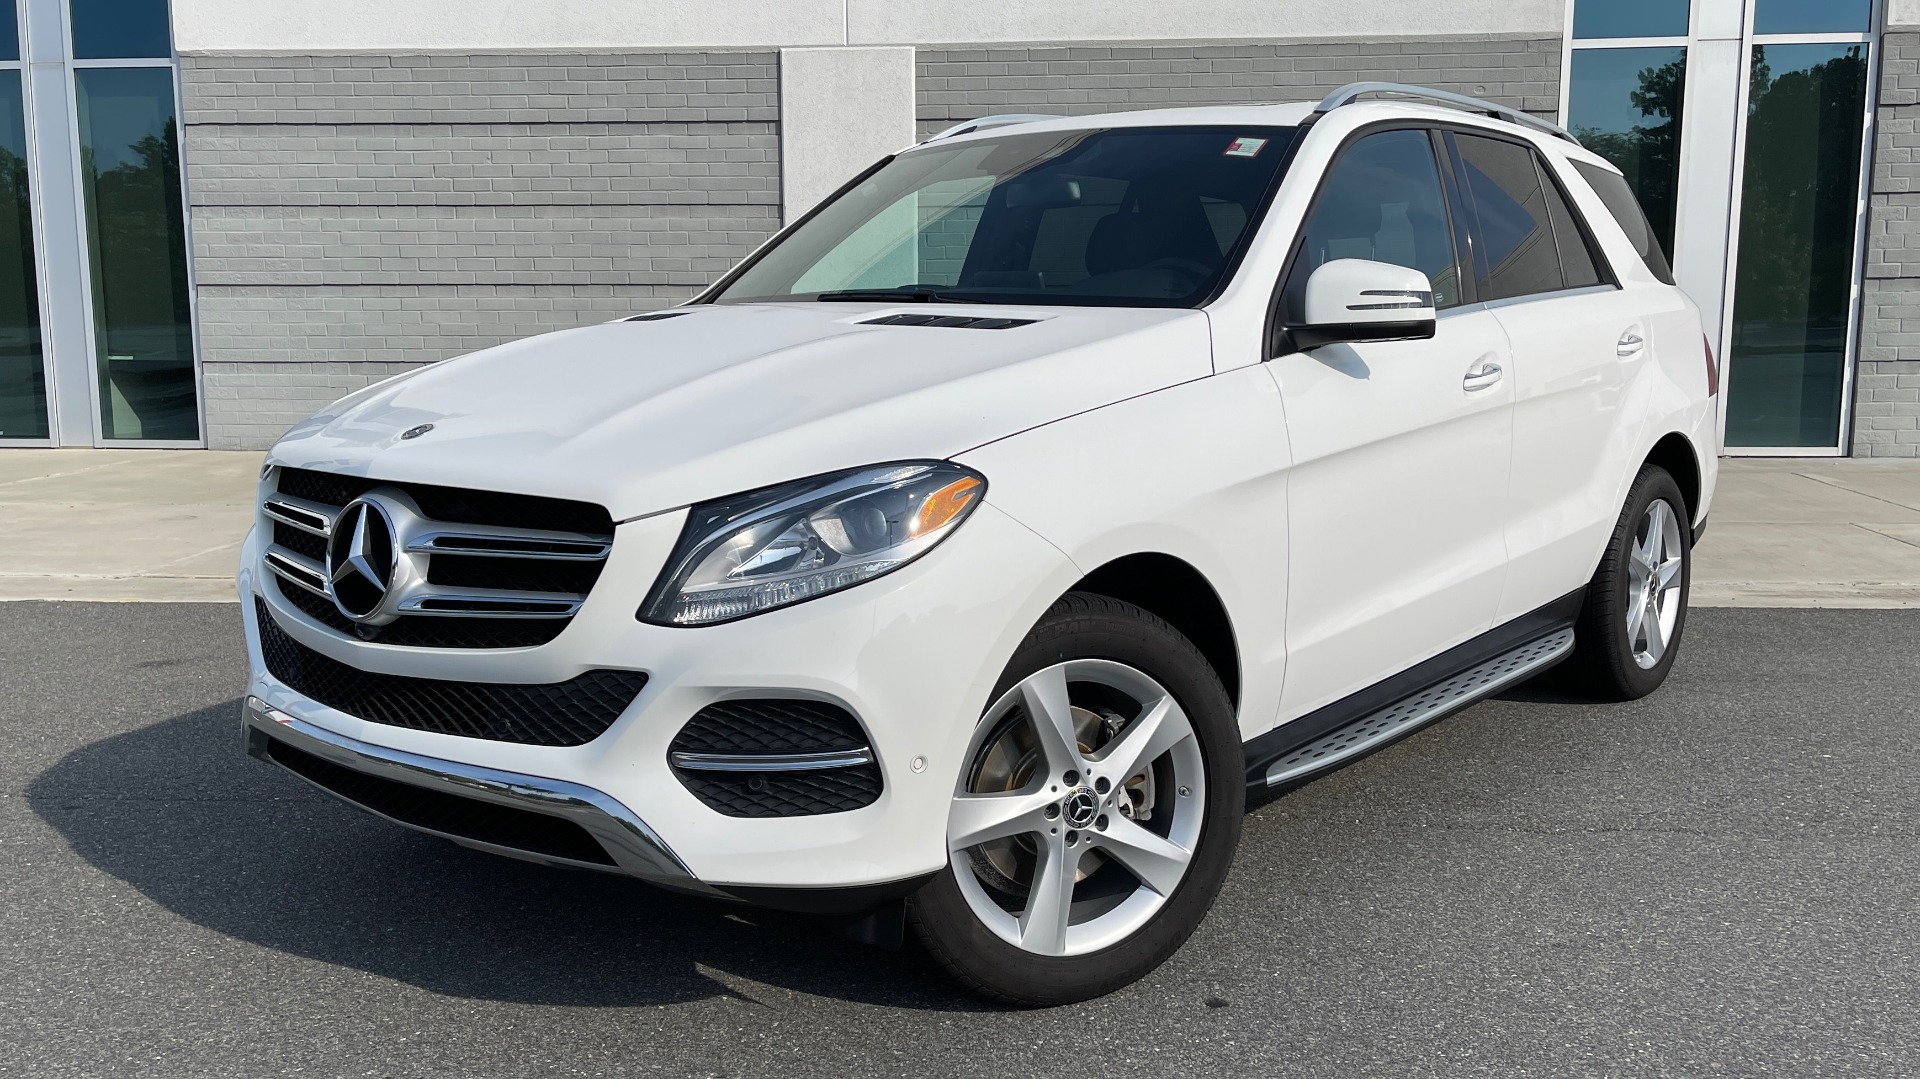 Used 2018 Mercedes-Benz GLE 350 4MATIC PREMIUM / NAV / SUNROOF / HTD STS / TRAILER HITCH / REARVIEW for sale $36,295 at Formula Imports in Charlotte NC 28227 1